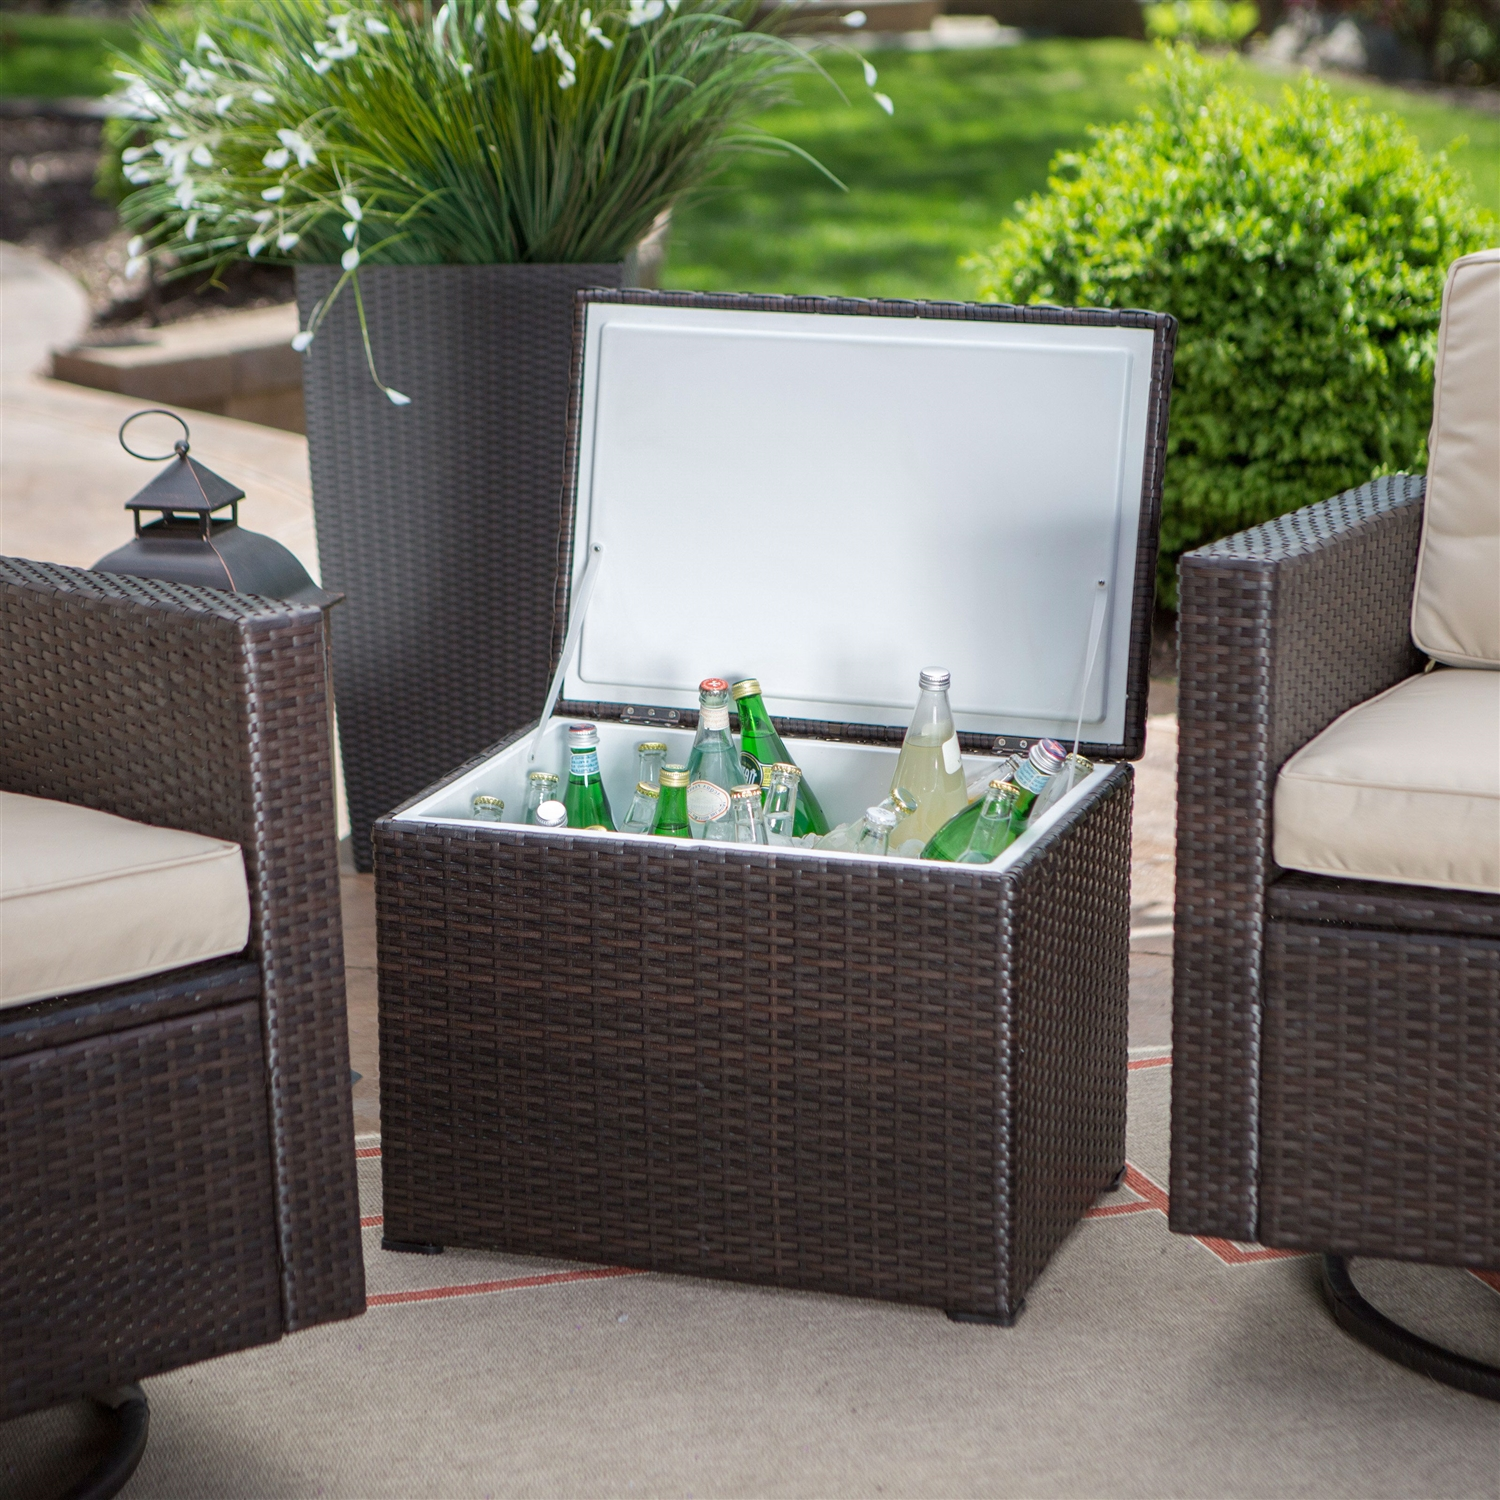 outdoor wicker resin 3 piece patio furniture dining set with cooler side table